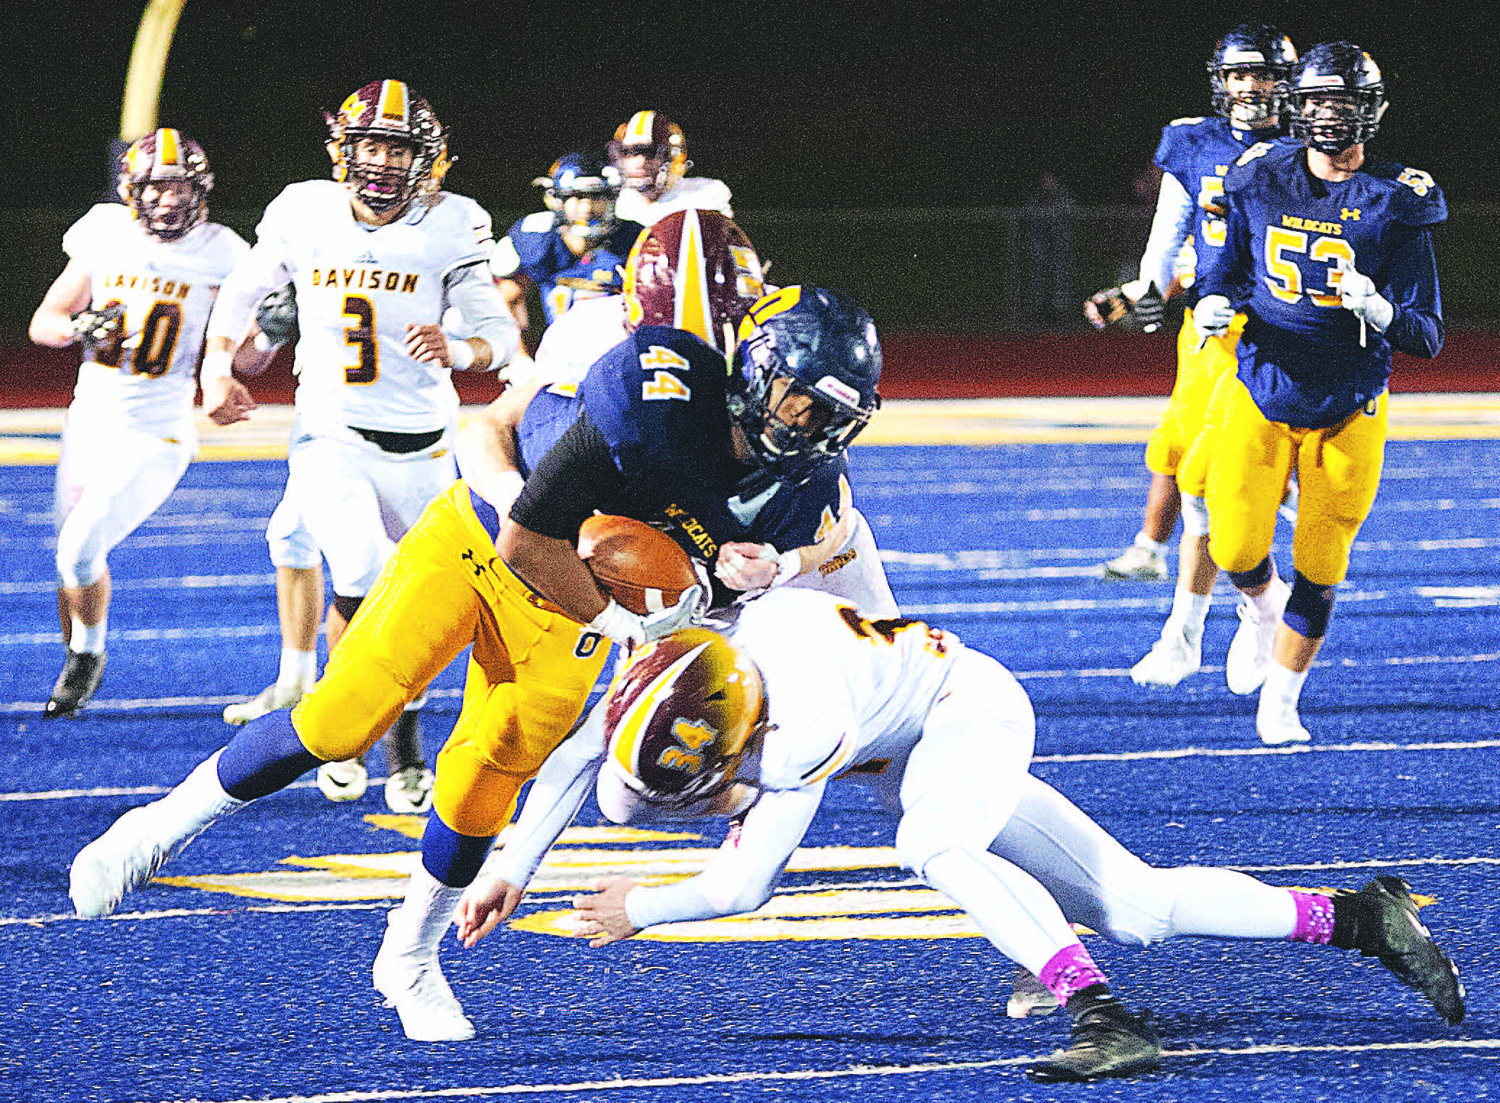 Oxford senior Marcus Hufnagel tries to evade a Davison defender. Photo by David Zanin.